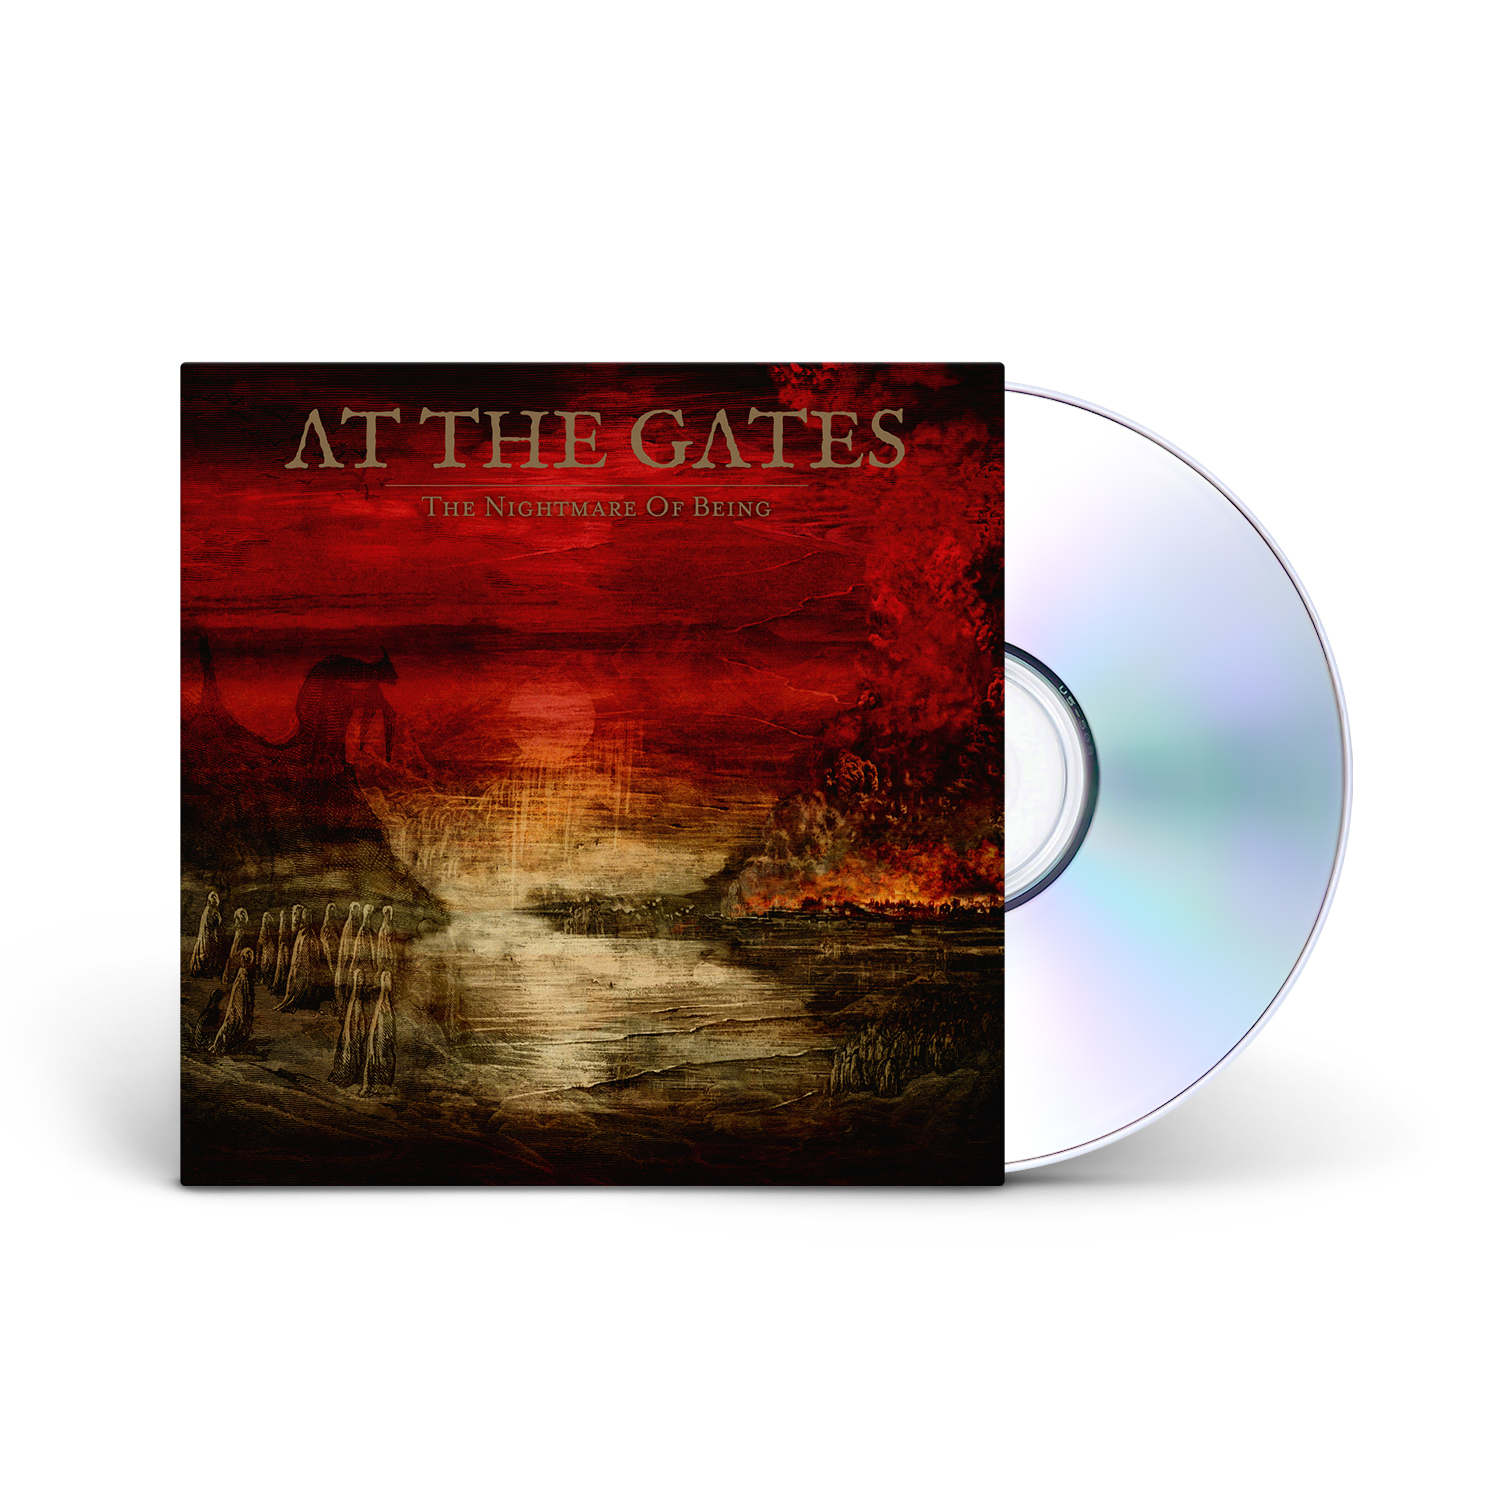 At The Gates - The Nightmare of Being CD Jewelcase + Digital Download